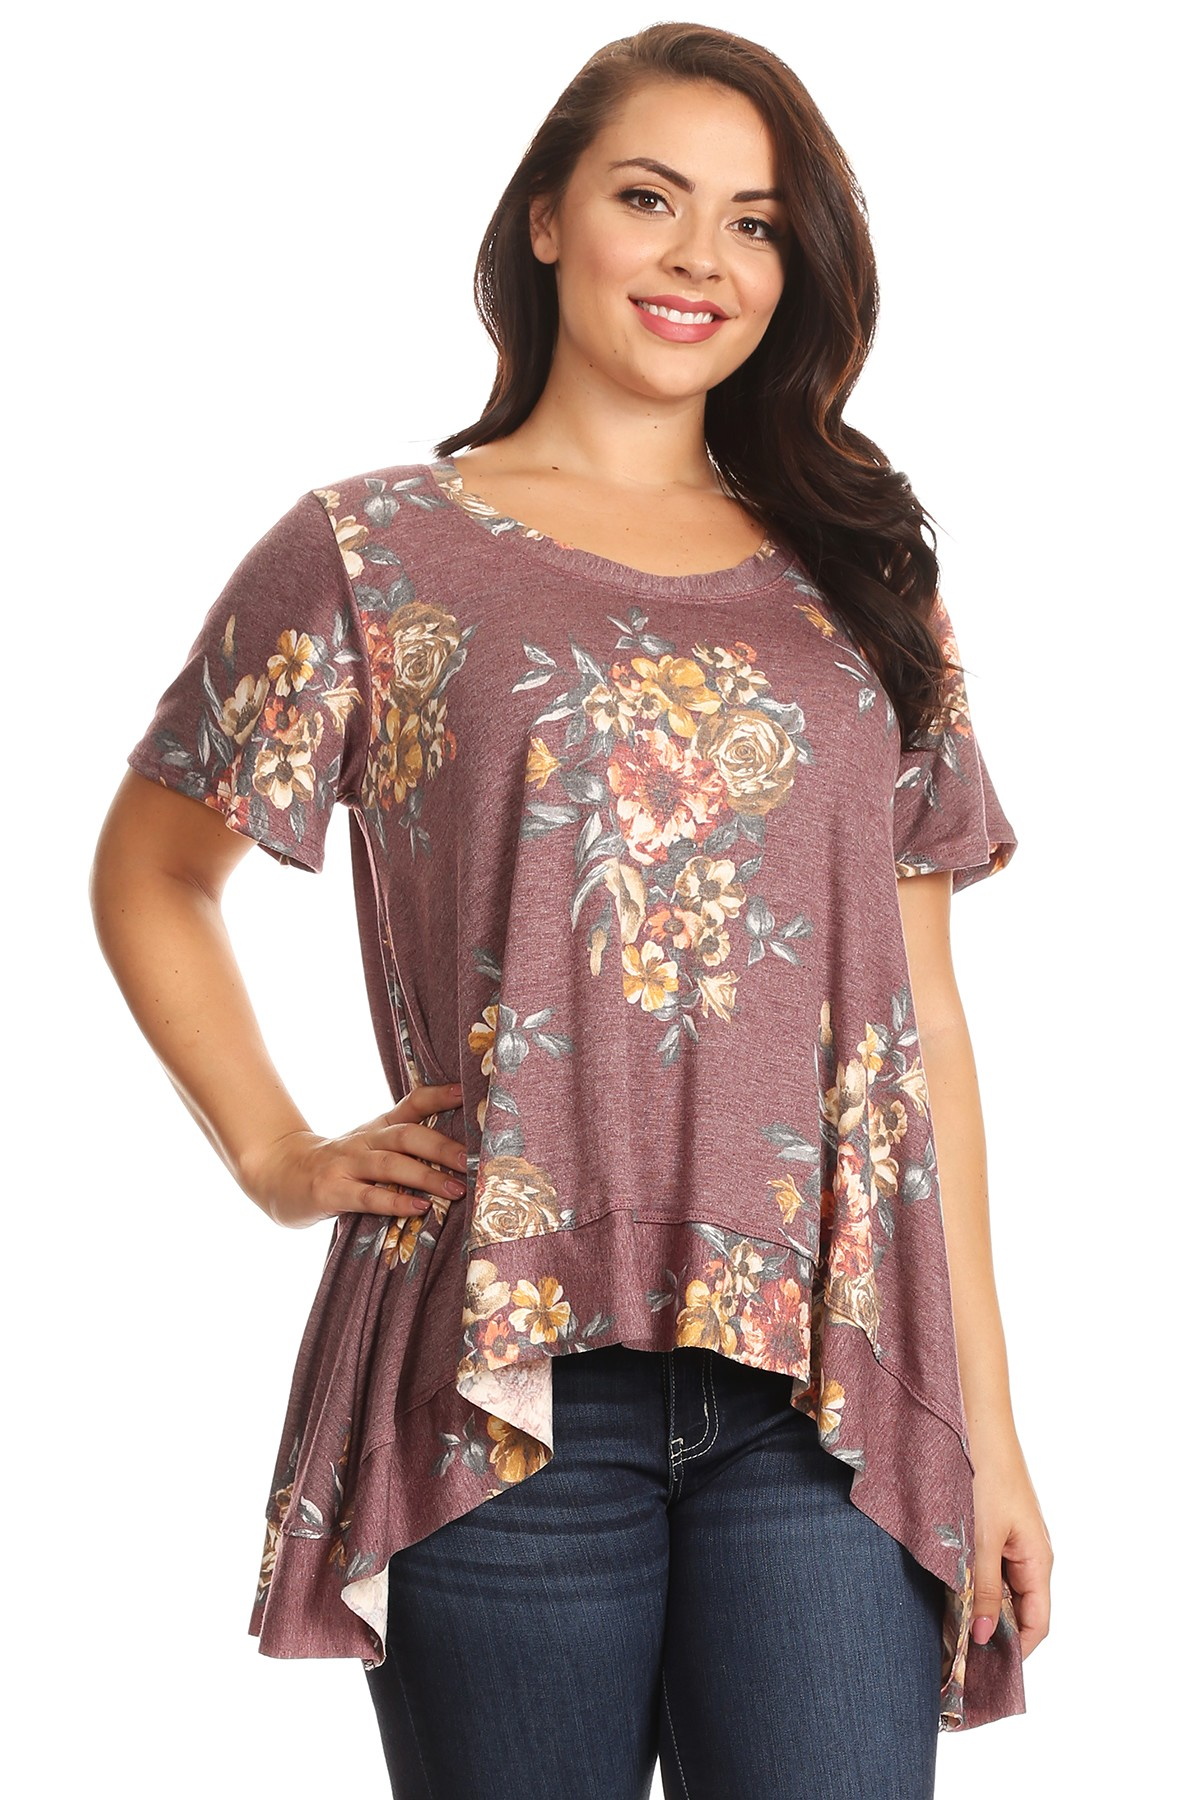 DESERE TUNIC IN BURGUNDY FLORAL